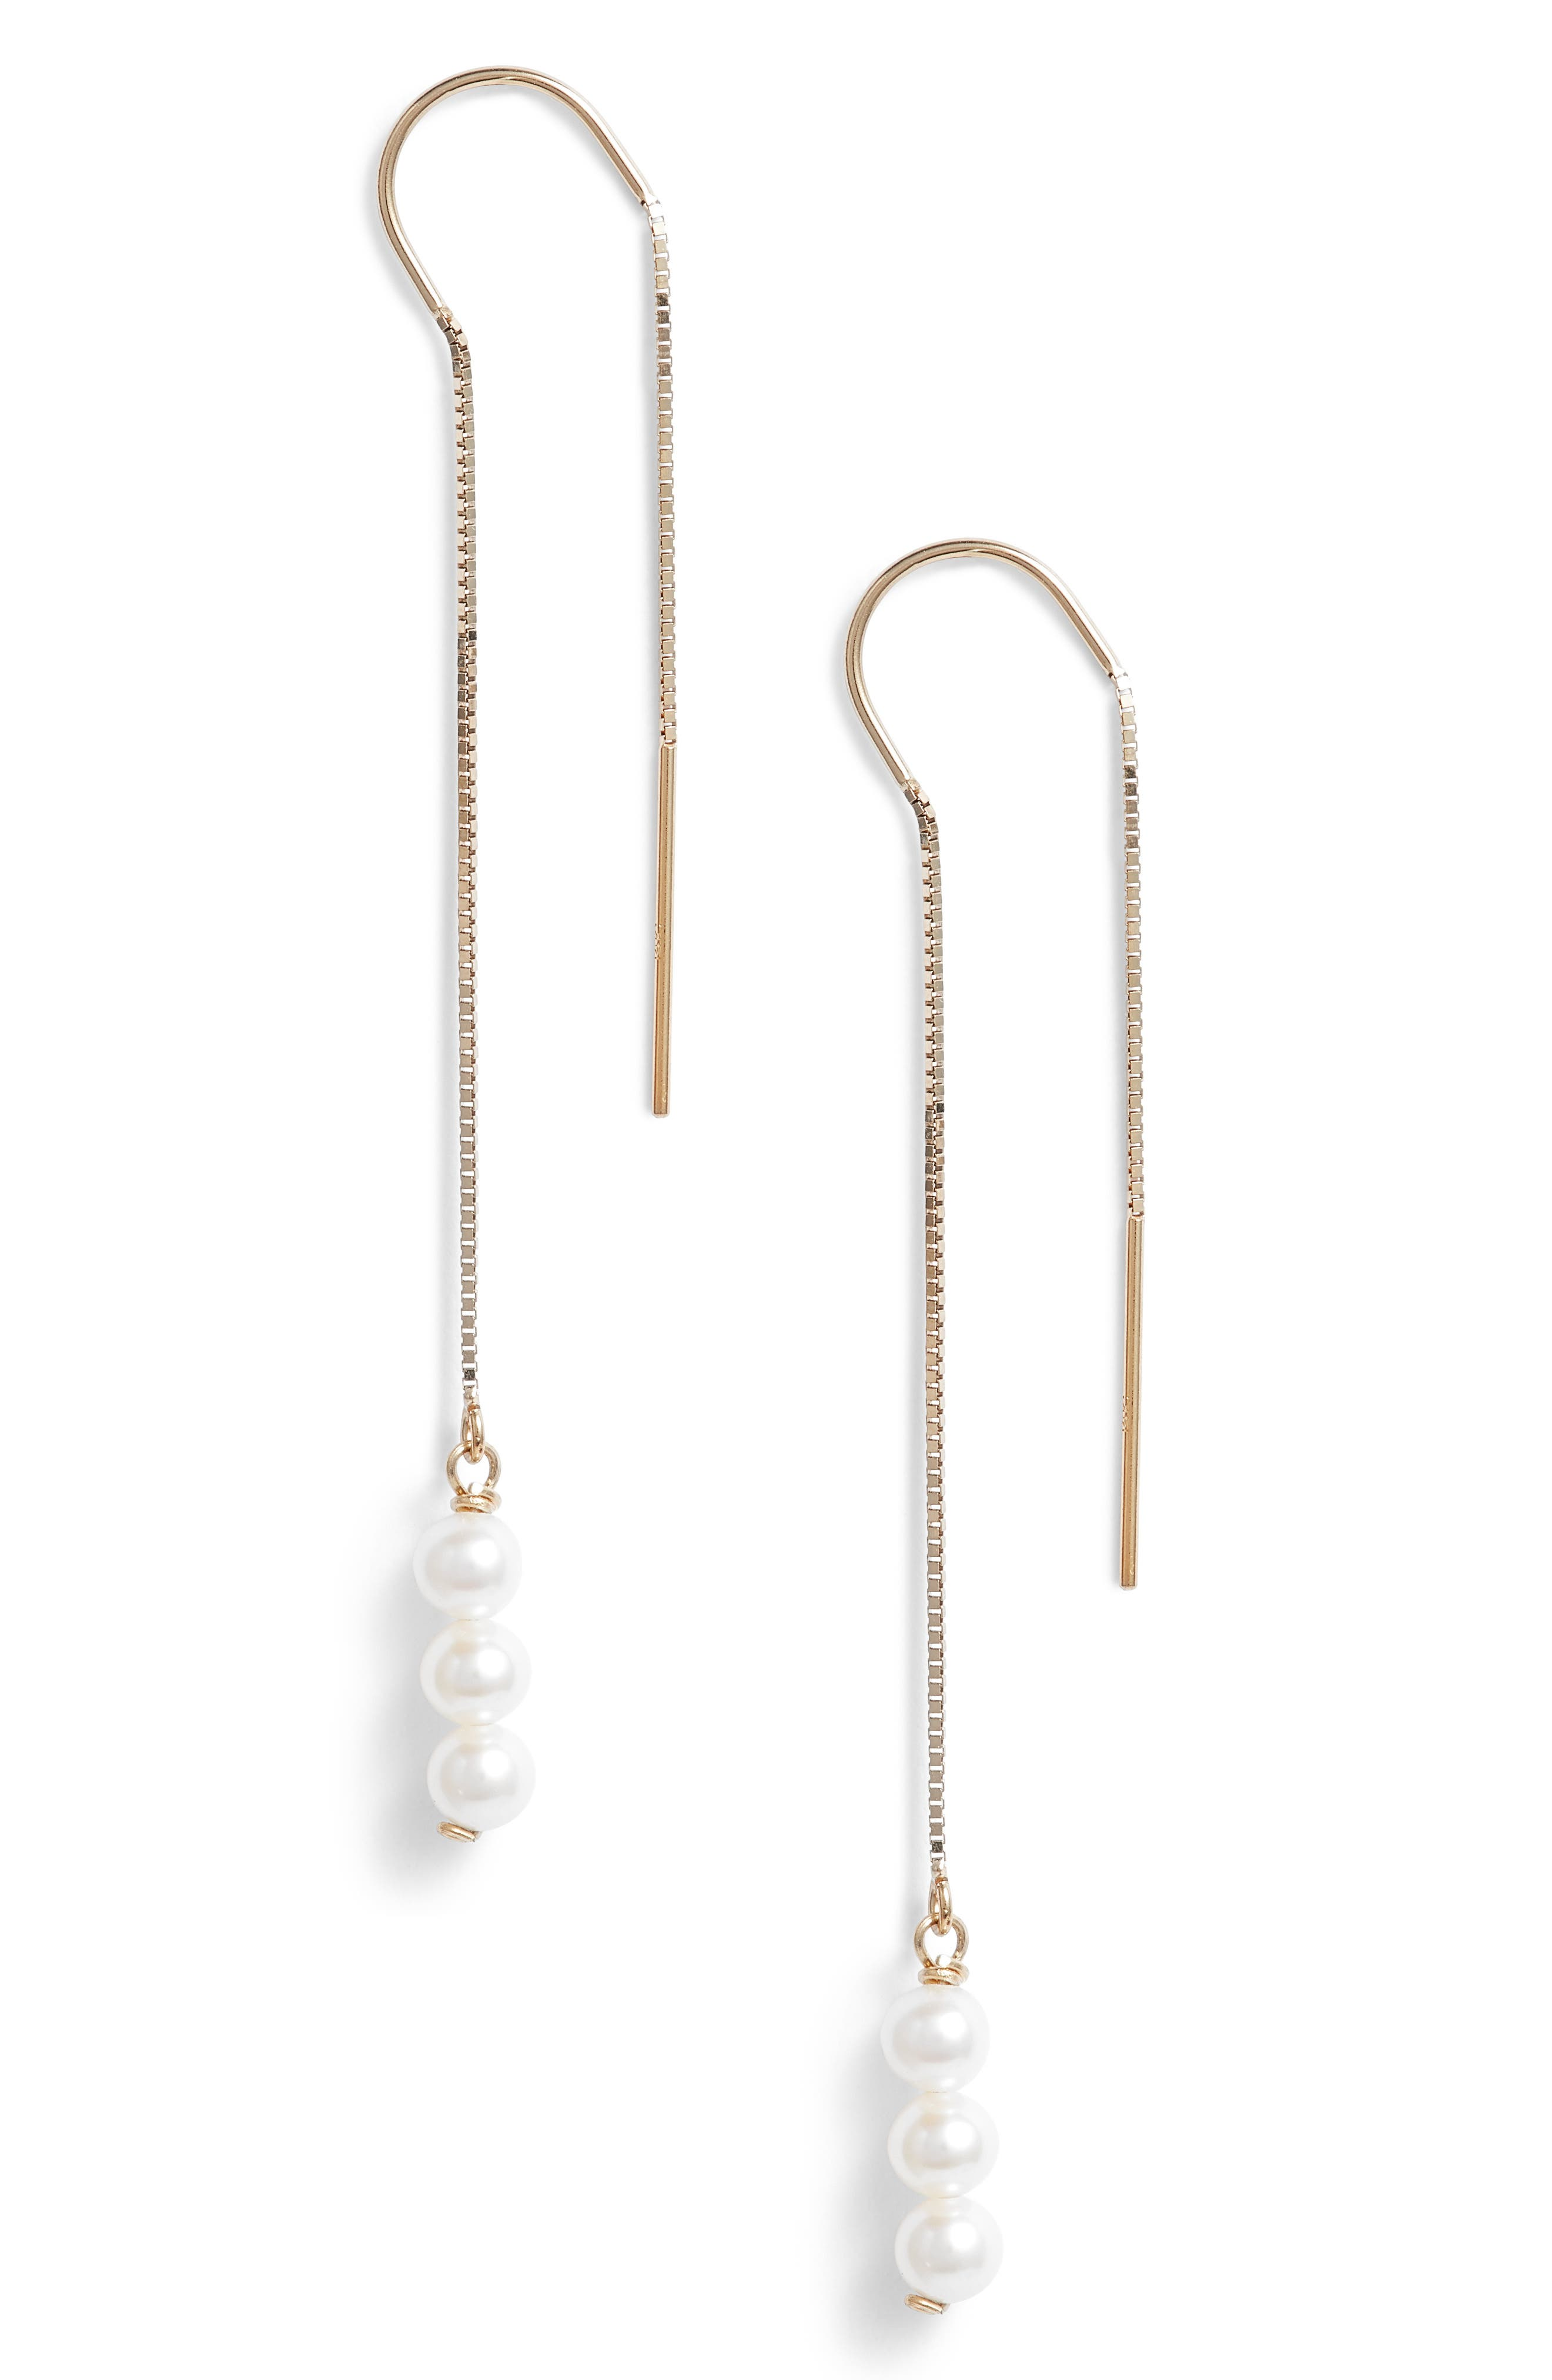 Triple Baby Pearl Threader Earrings,                             Main thumbnail 1, color,                             Yellow Gold/ White Pearl